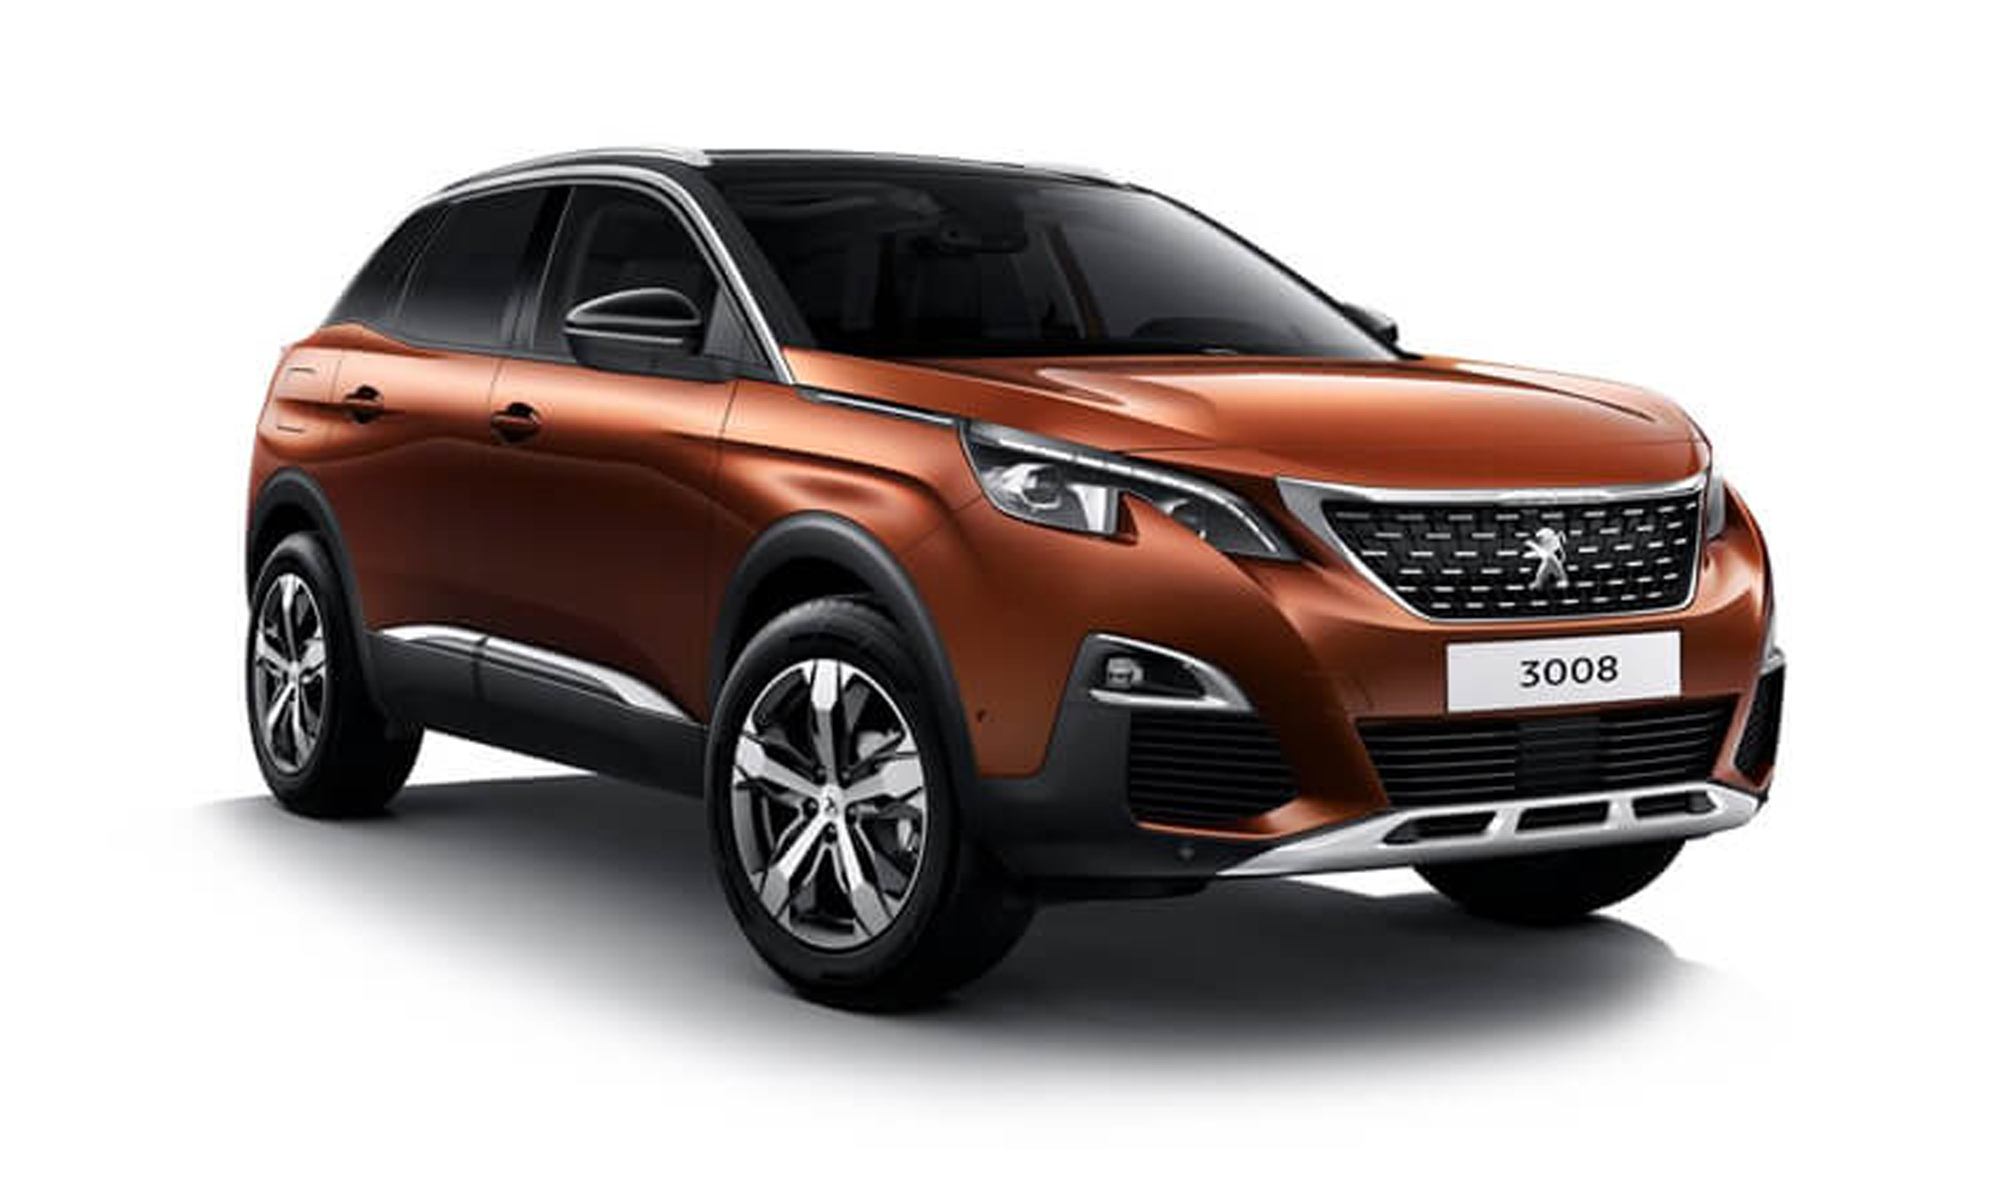 Peugeot 3008 Suv White Background